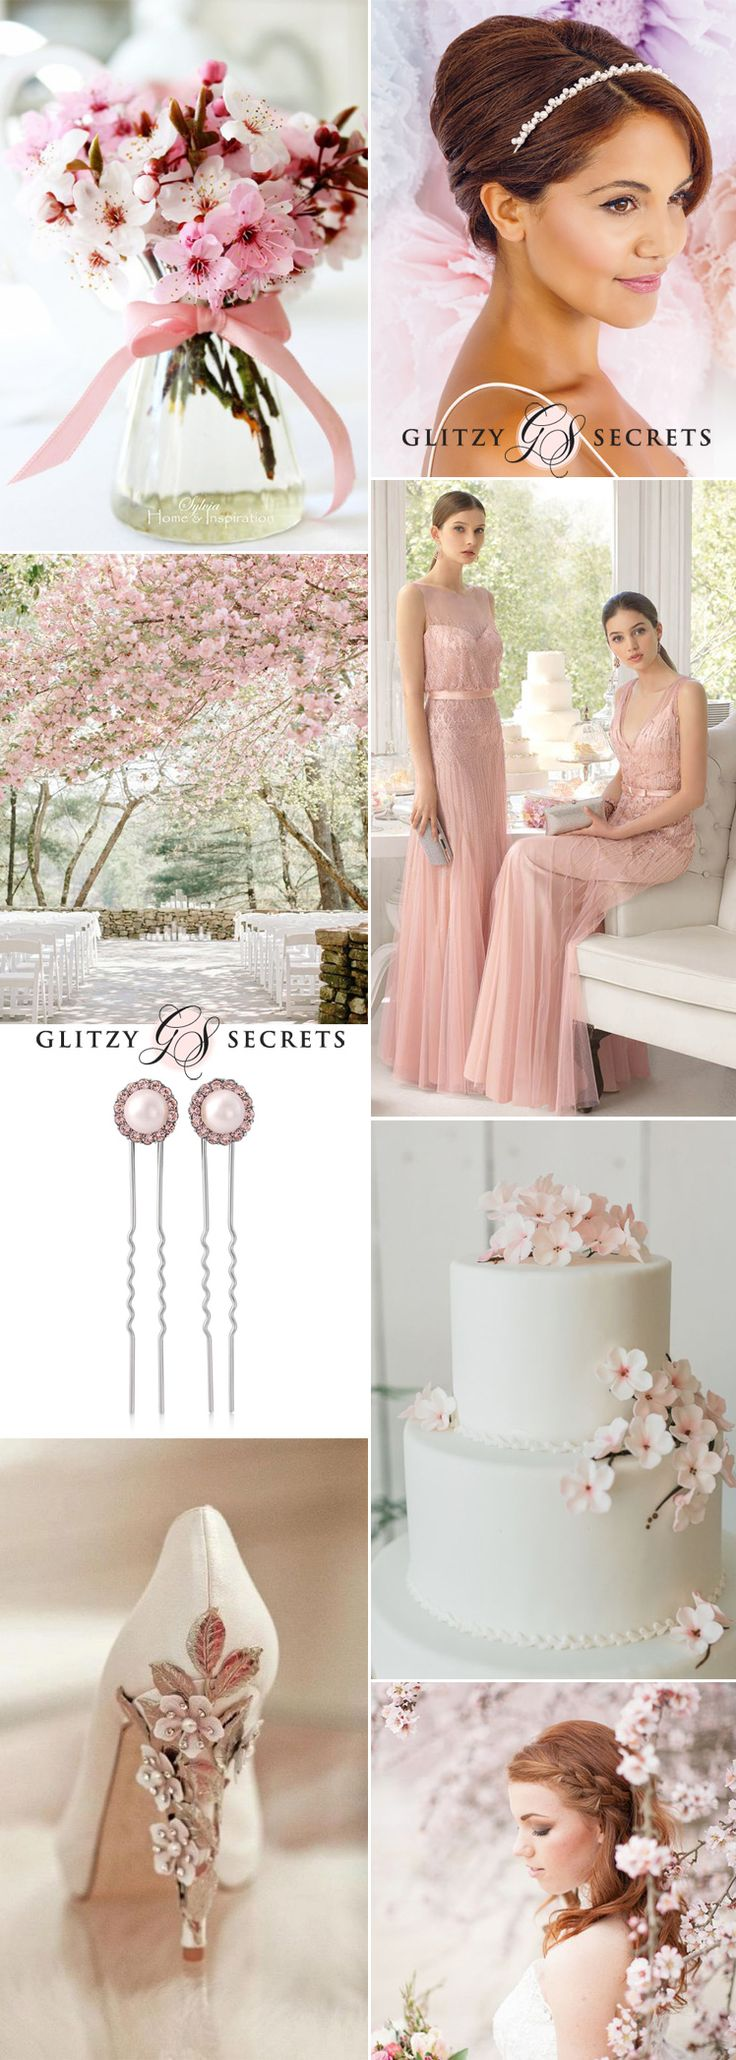 Cherry blossom - a pretty Spring wedding theme on GS Inspiration - Glitzy Secrets